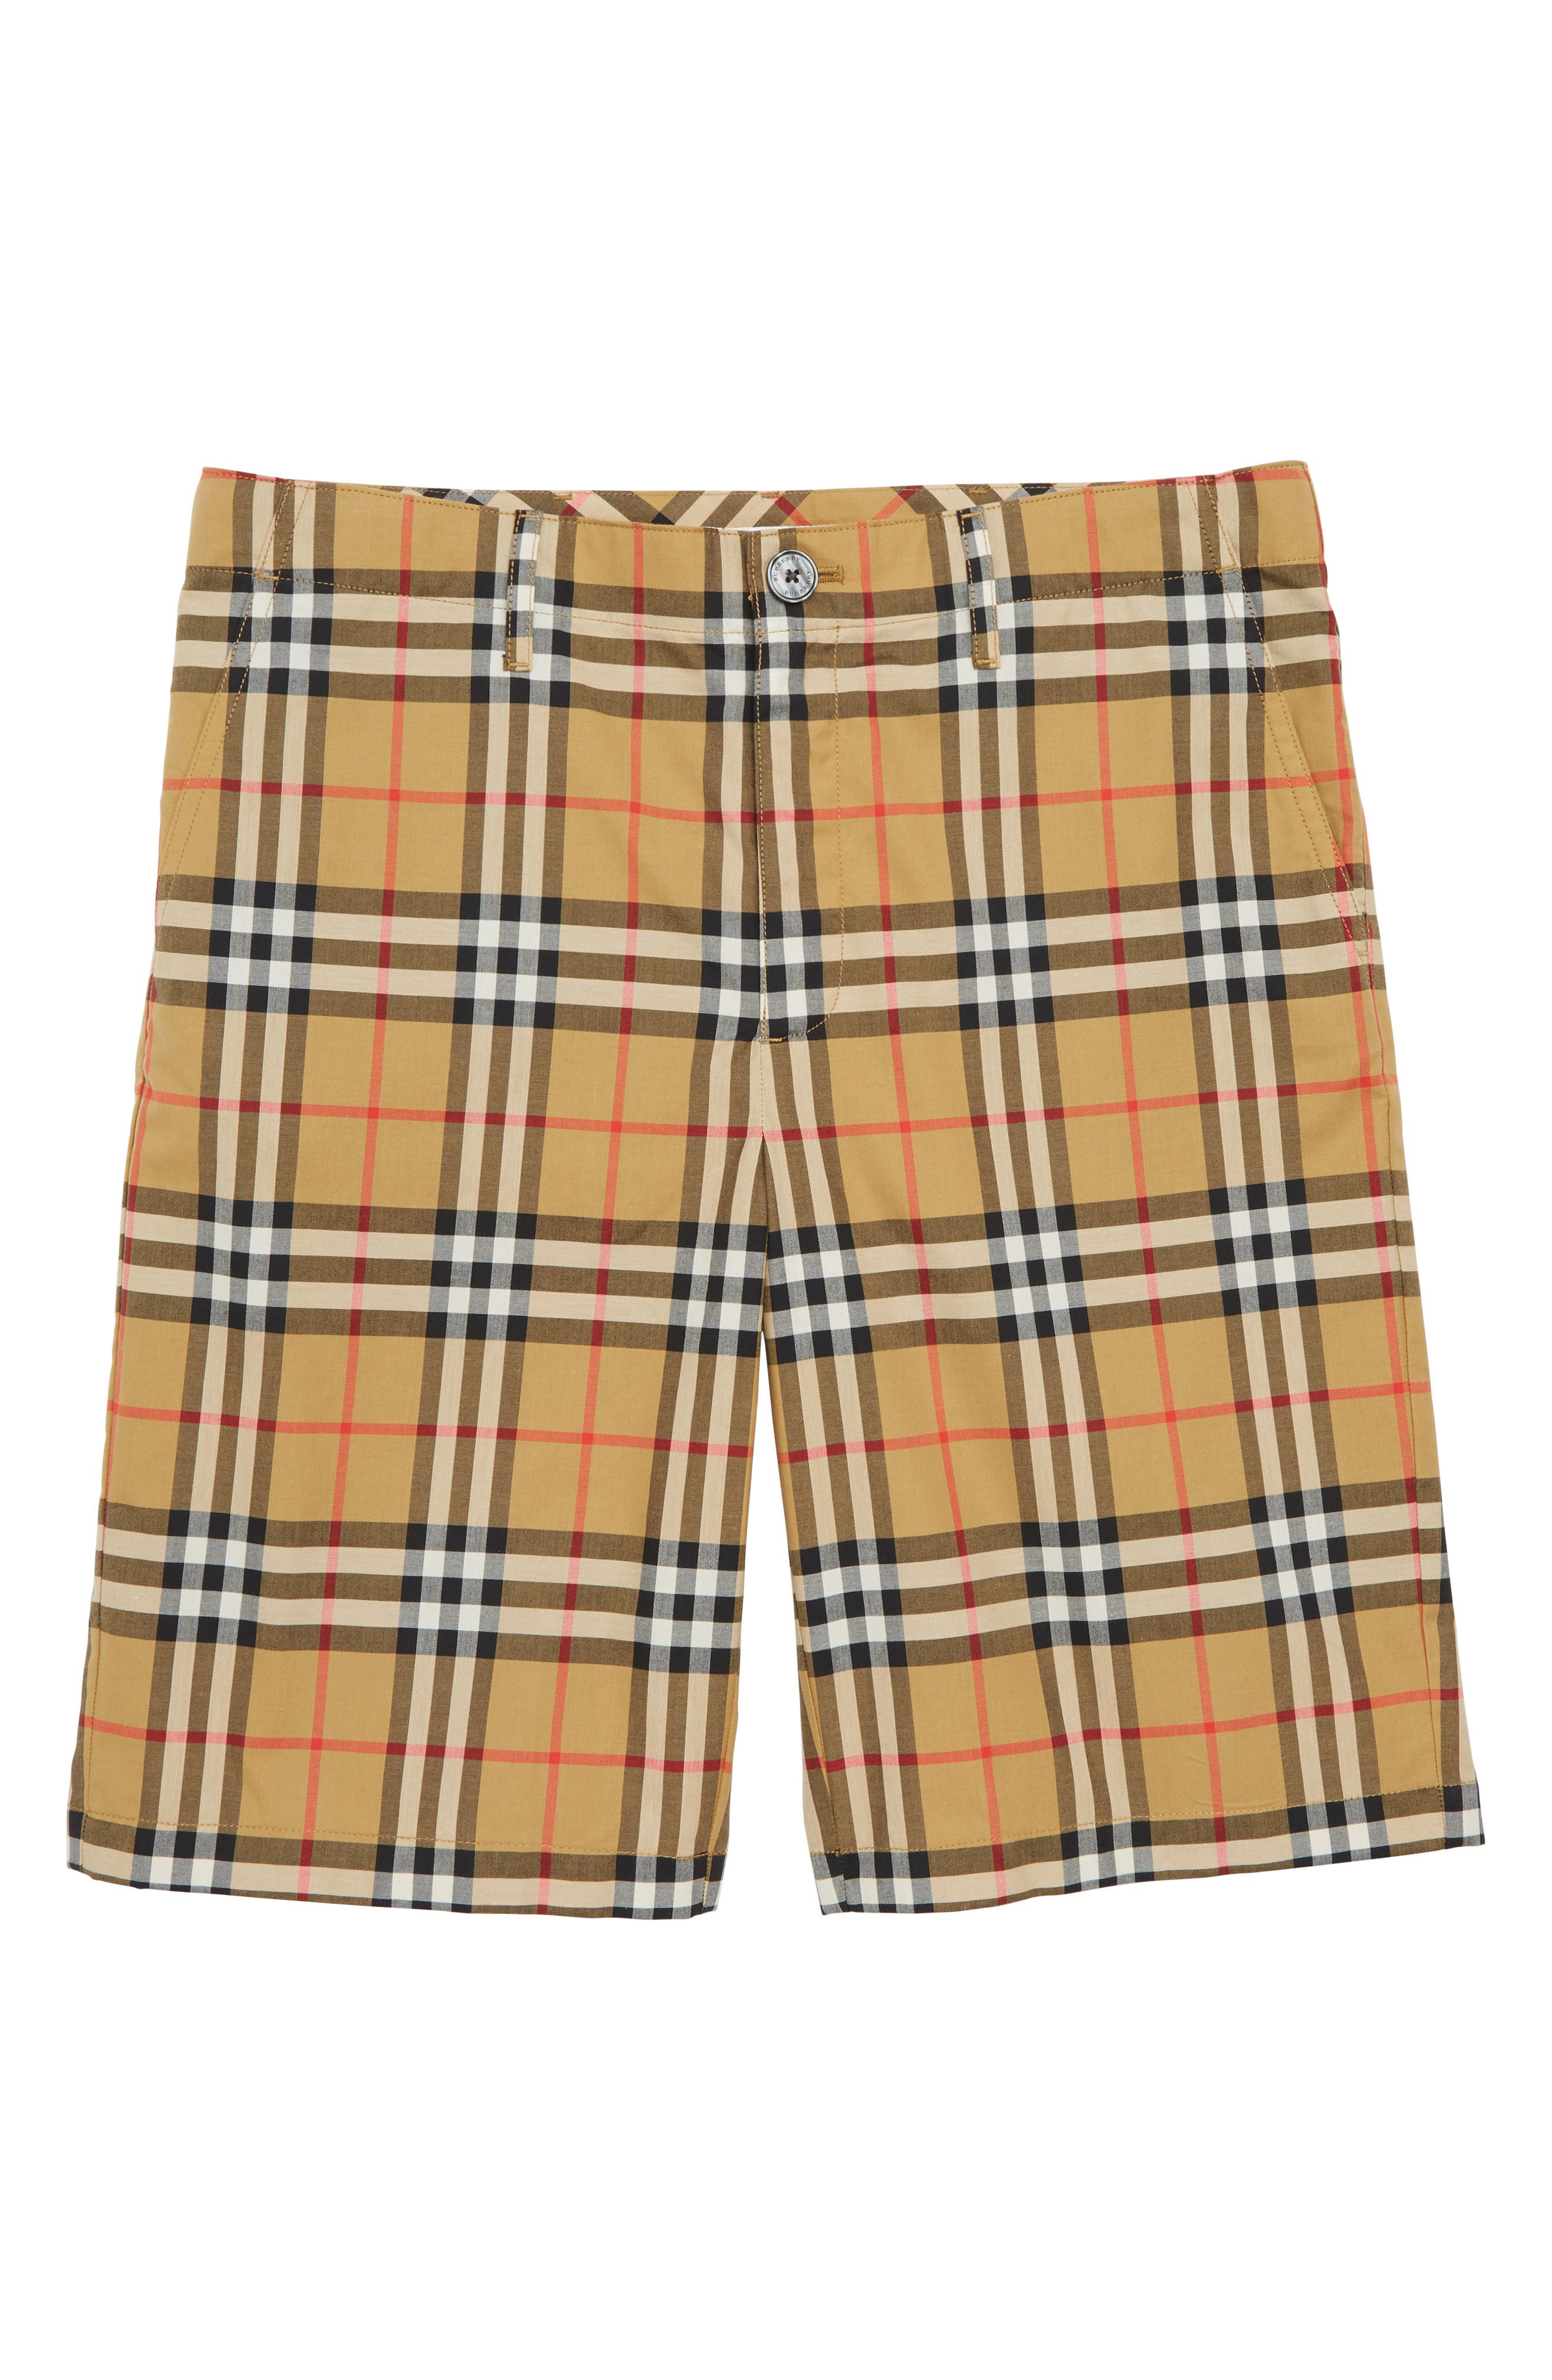 BURBERRY Tristen Check Shorts, Main, color, 251